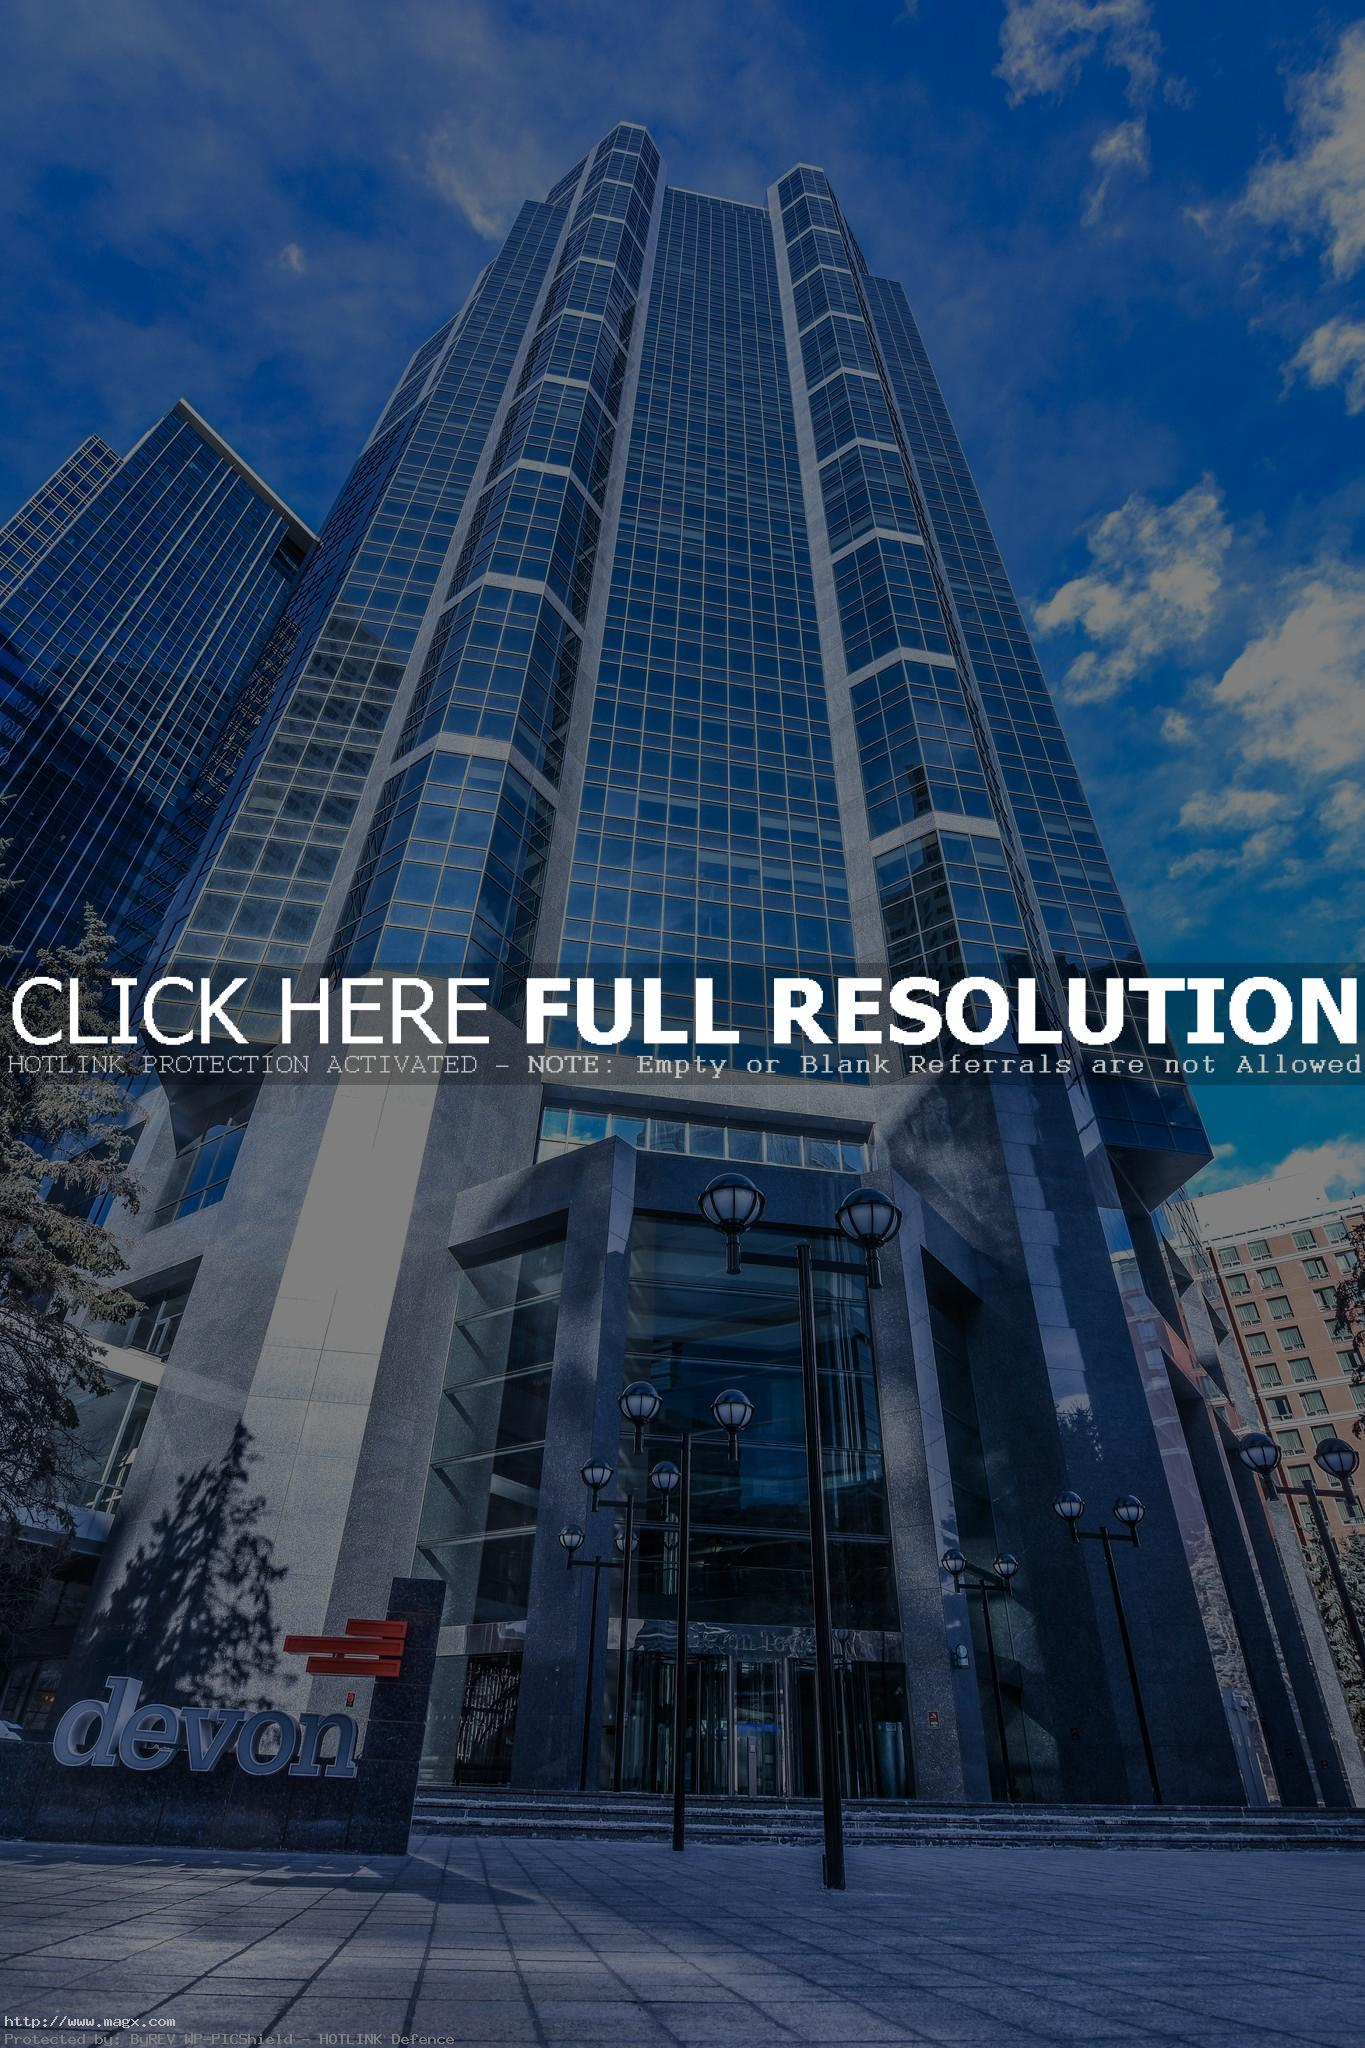 calgary its architectural masterpieces1 Calgary and its Architectural Masterpieces